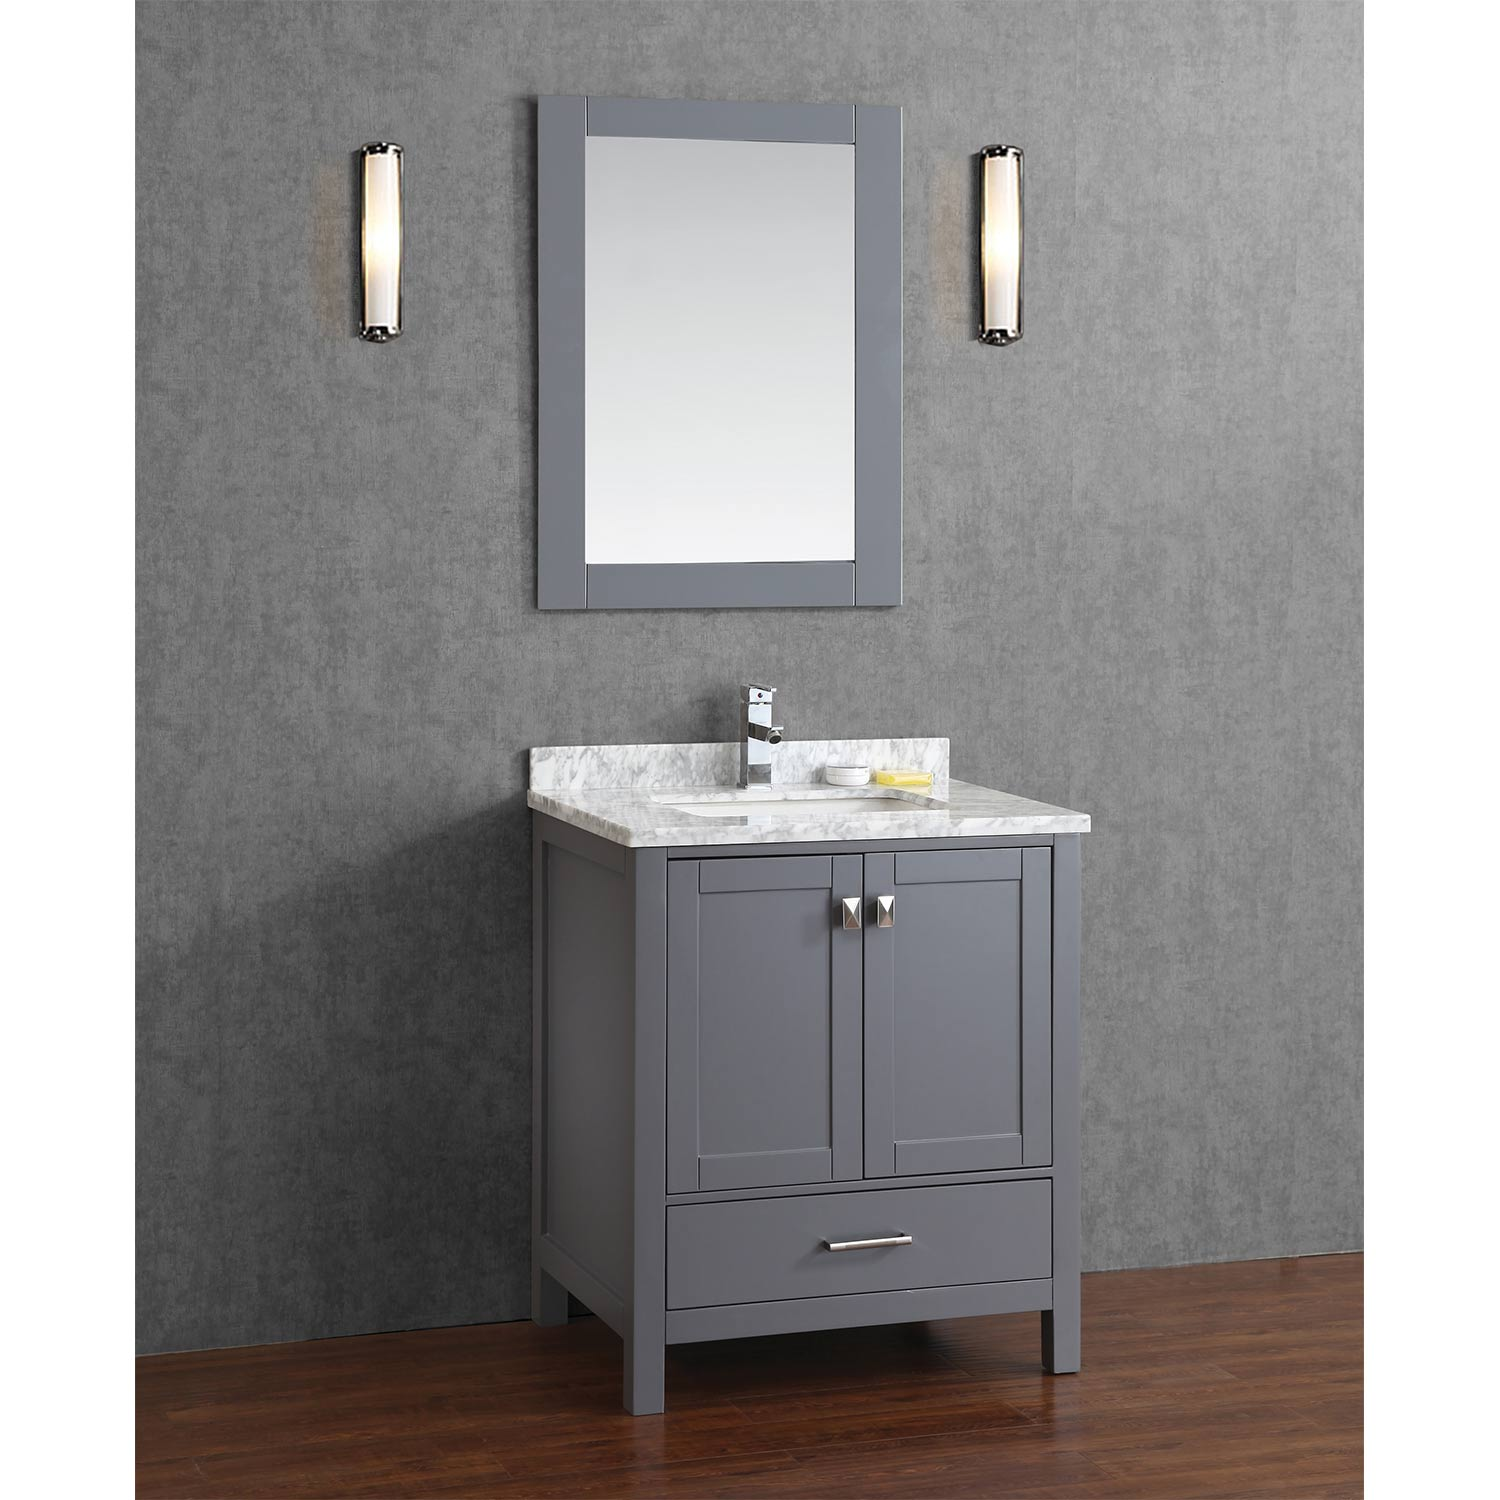 Buy Vincent 30 Inch Solid Wood Double Bathroom Vanity In Charcoal Grey Hm 13001 30 Wmsq Cg